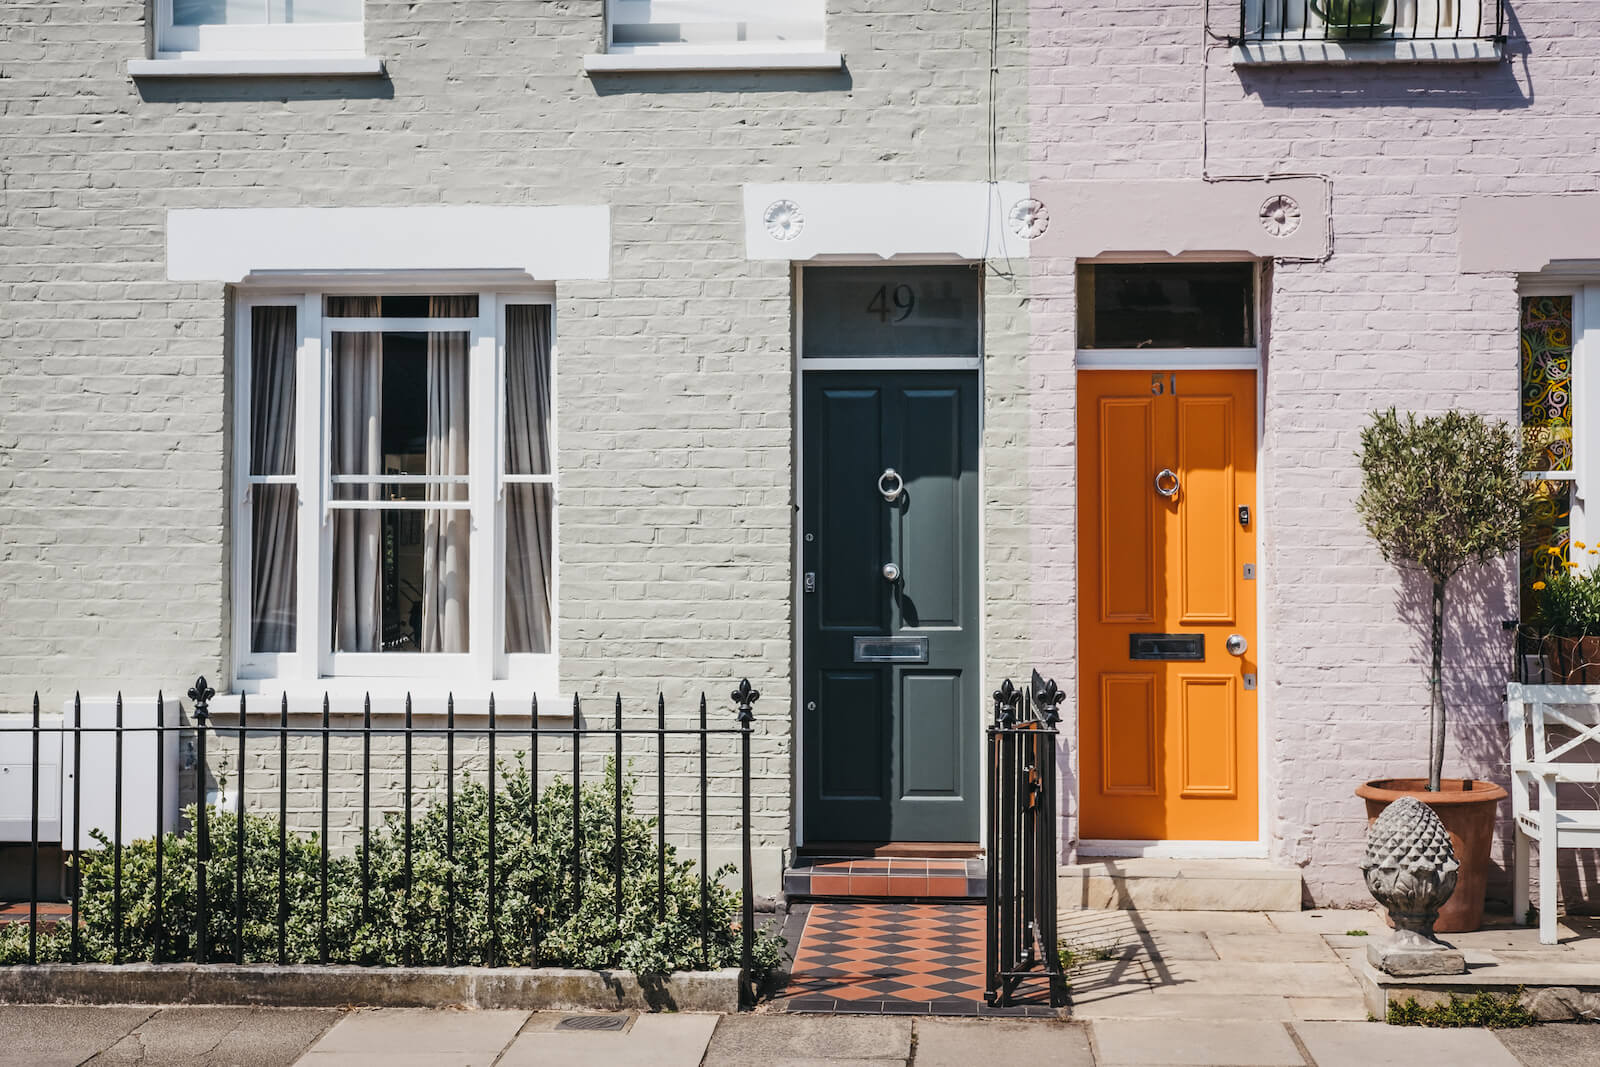 Leasehold vs Freehold: What's the Difference?